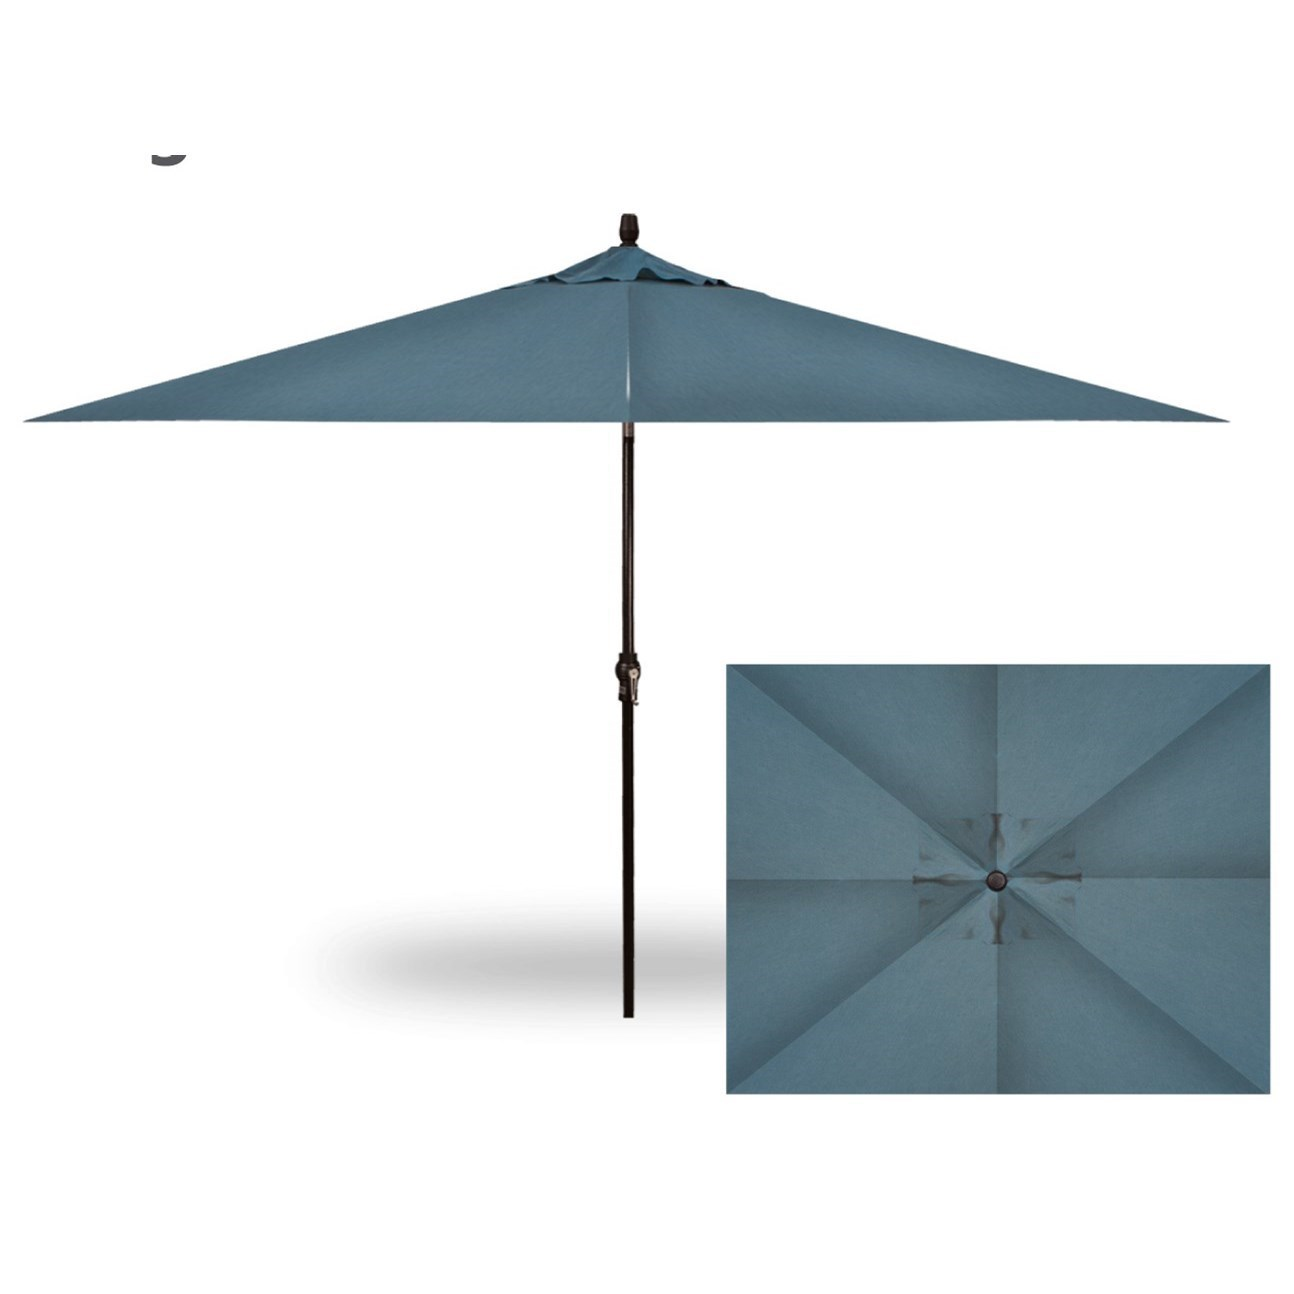 treasure garden rectangle auto tilt umbrellas rectangle auto tilt market umbrella john v schultz furniture umbrellas